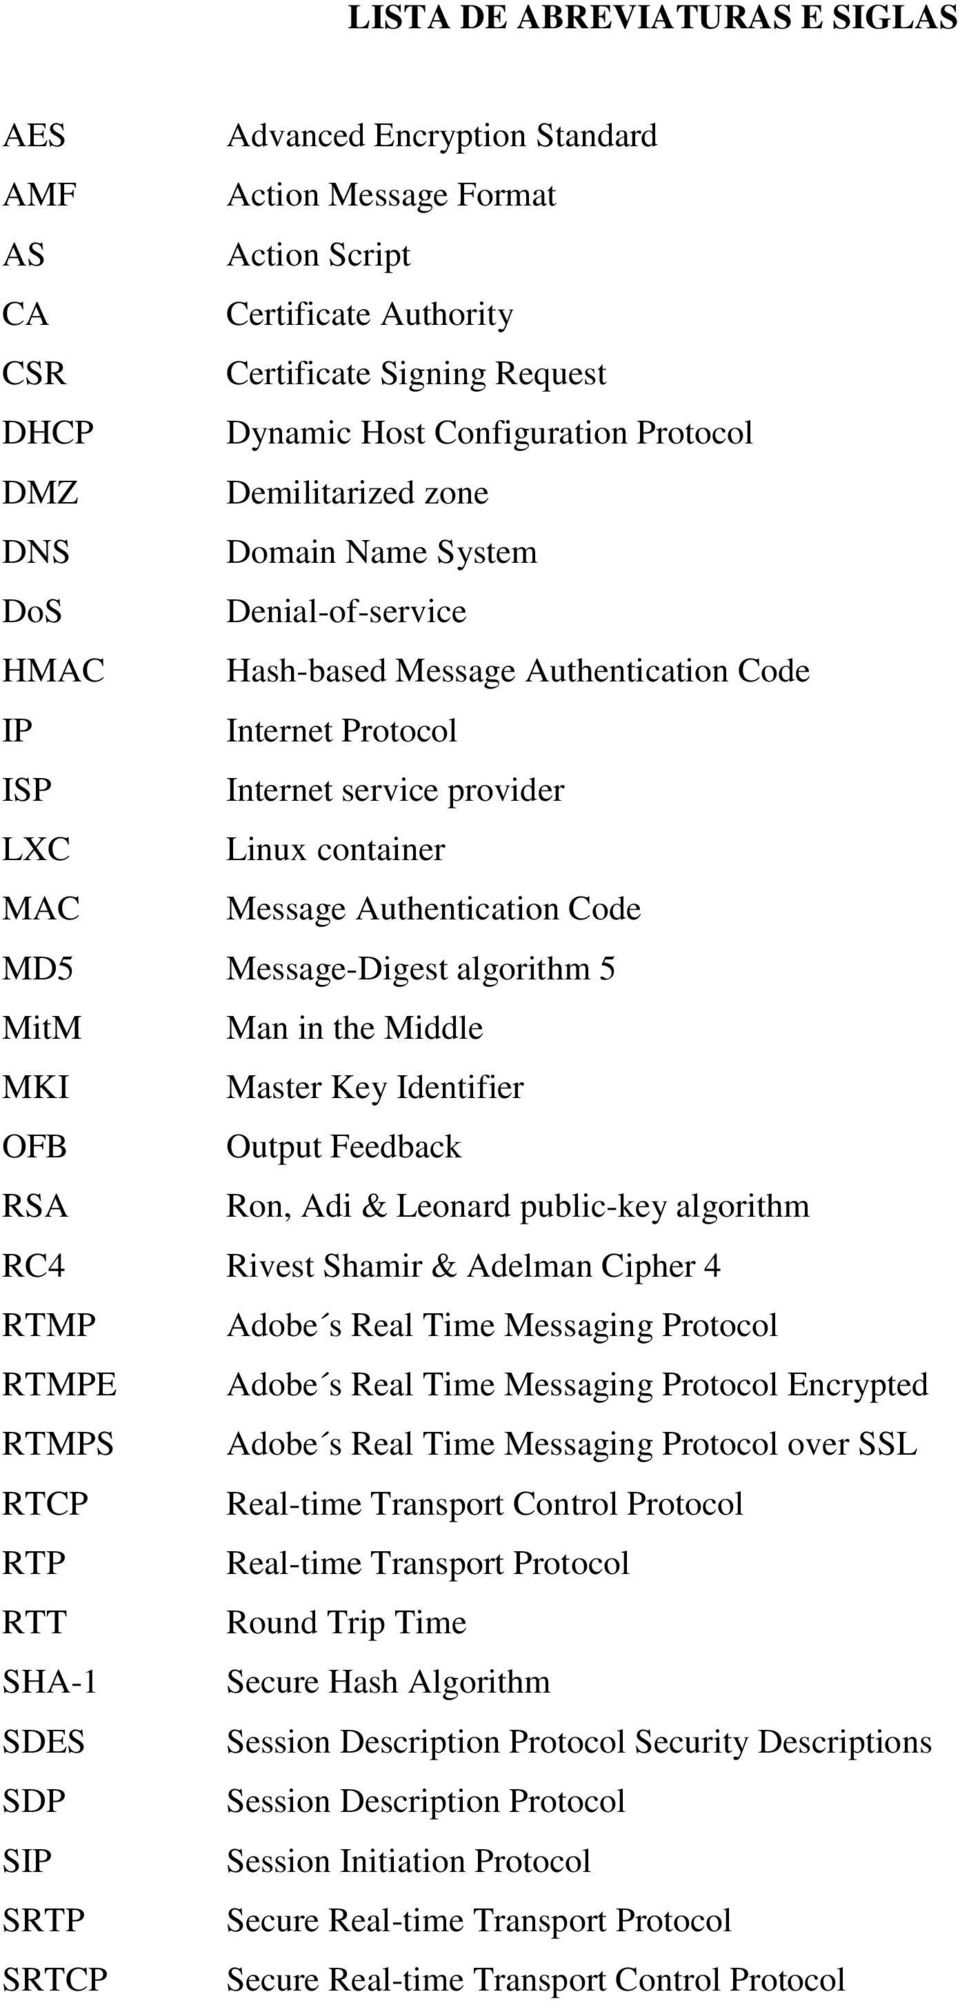 Message Authentication Code MD5 Message-Digest algorithm 5 MitM Man in the Middle MKI Master Key Identifier OFB Output Feedback RSA Ron, Adi & Leonard public-key algorithm RC4 Rivest Shamir & Adelman